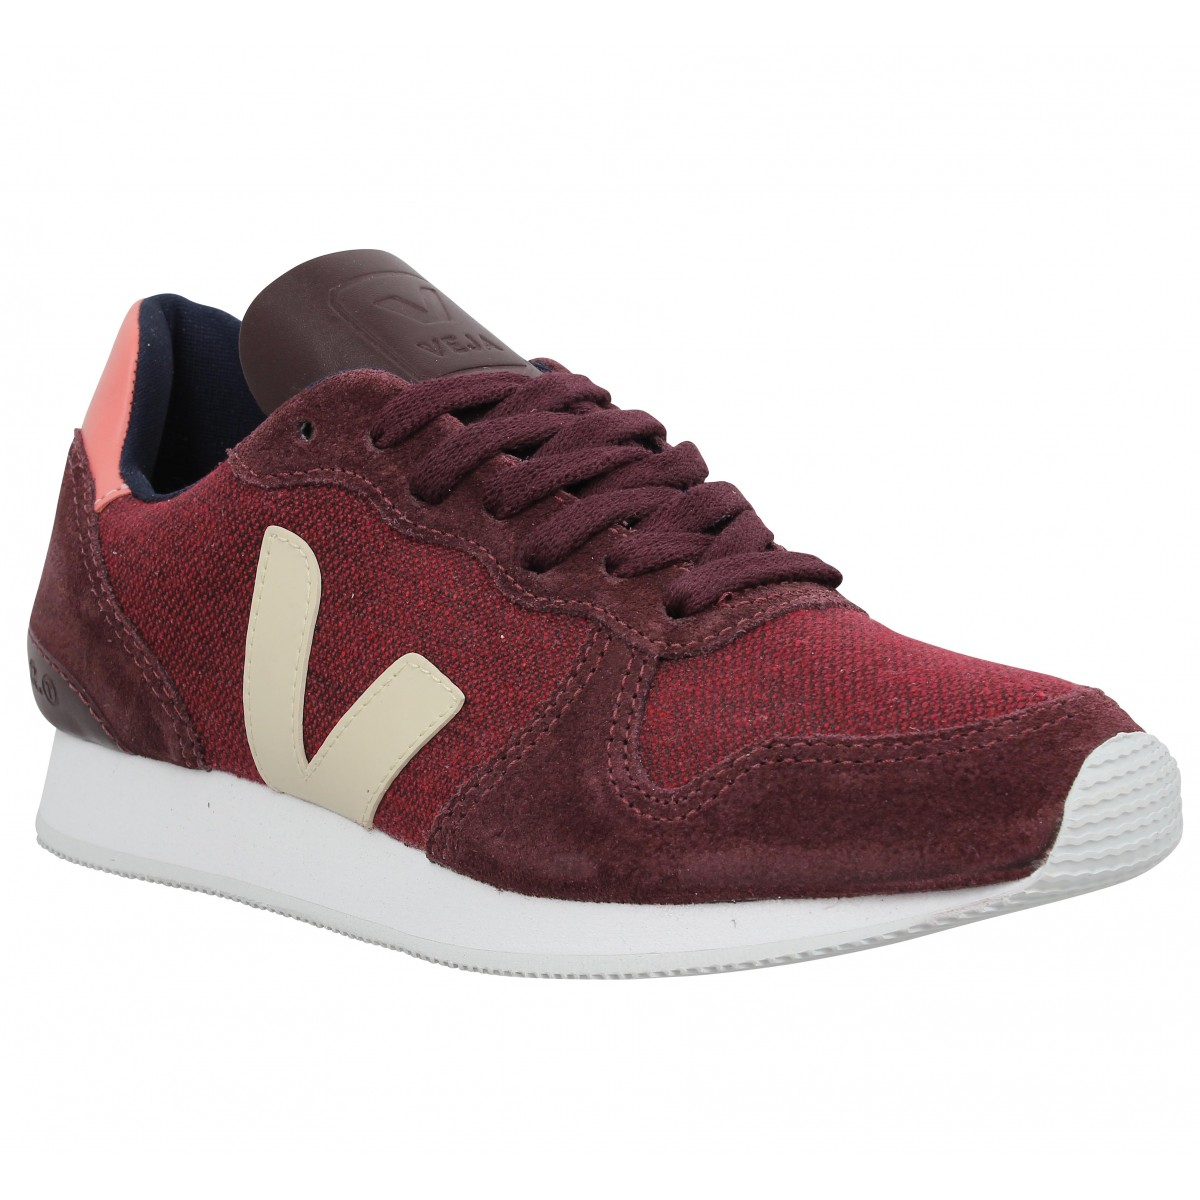 Baskets VEJA Holiday cuir textile Femme Bordeaux